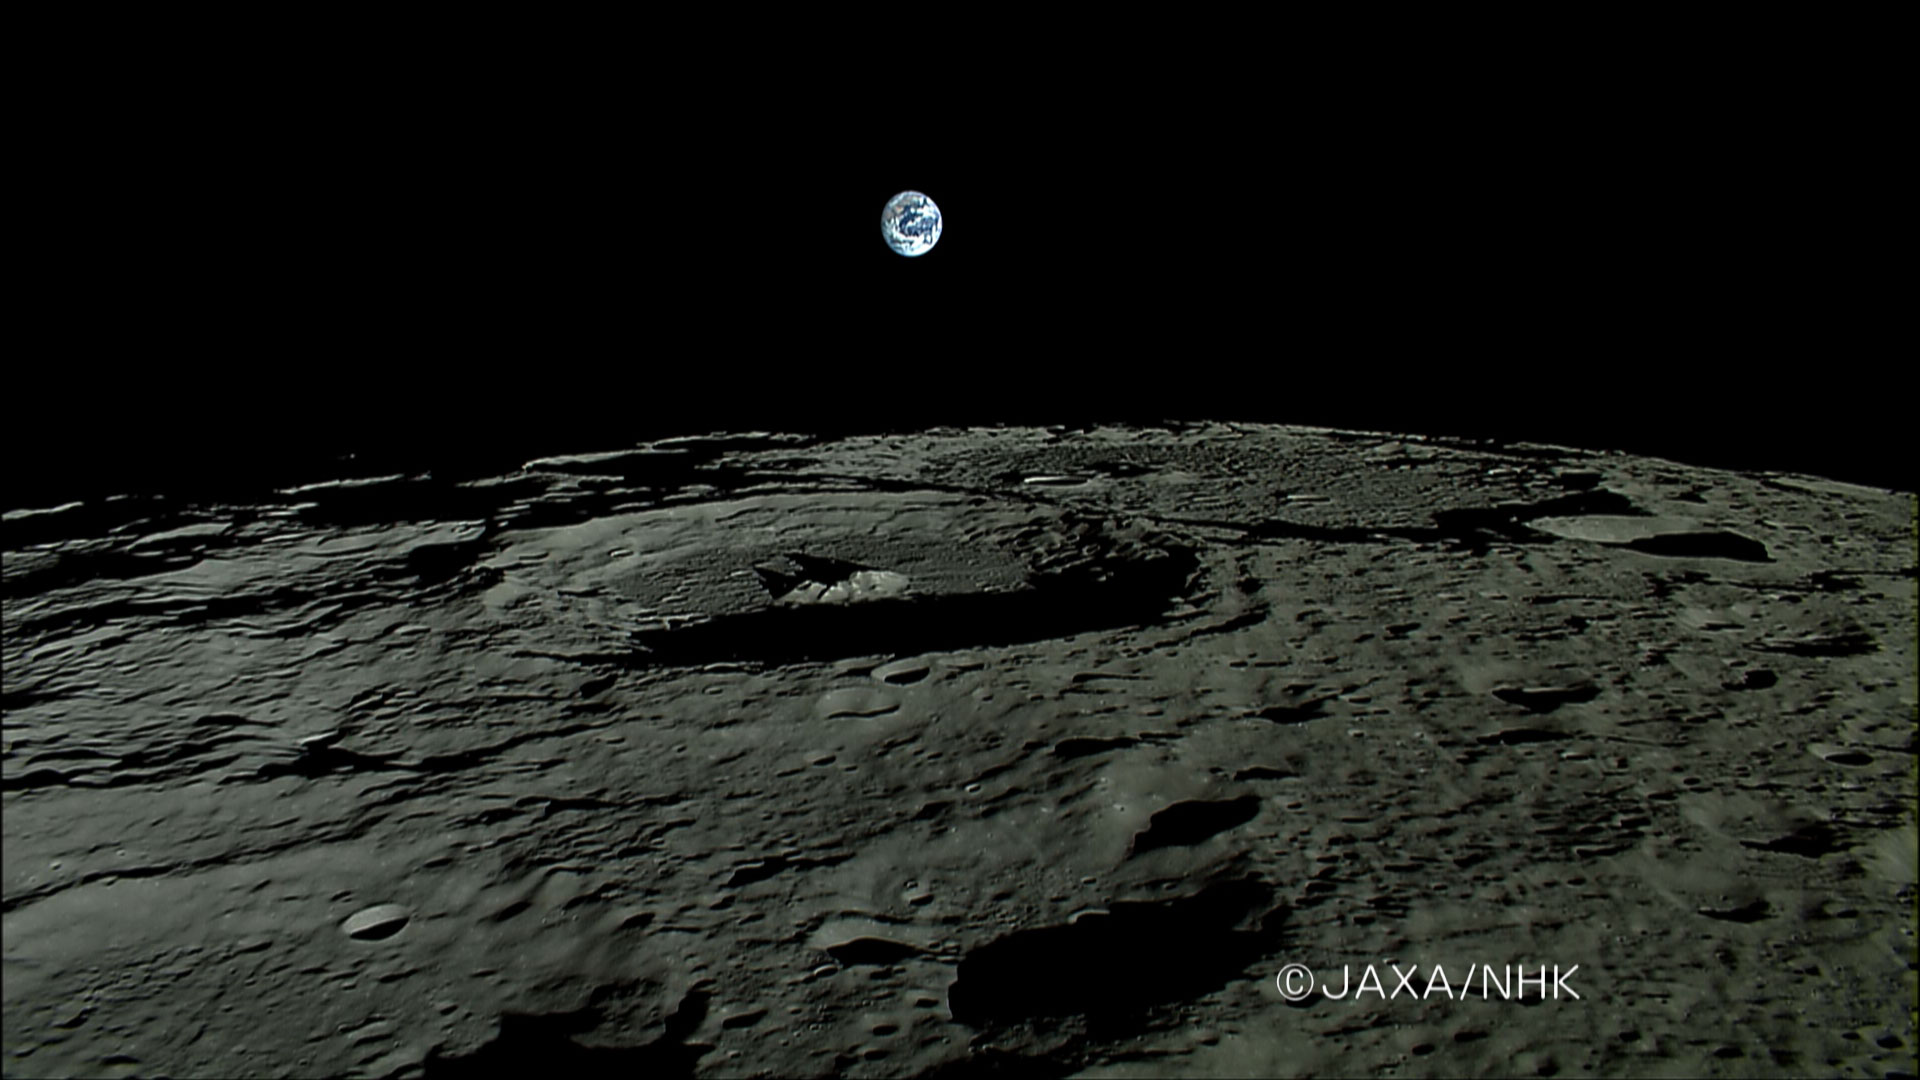 apod: 2007 november 20 - earthrise from moon-orbiting kaguya